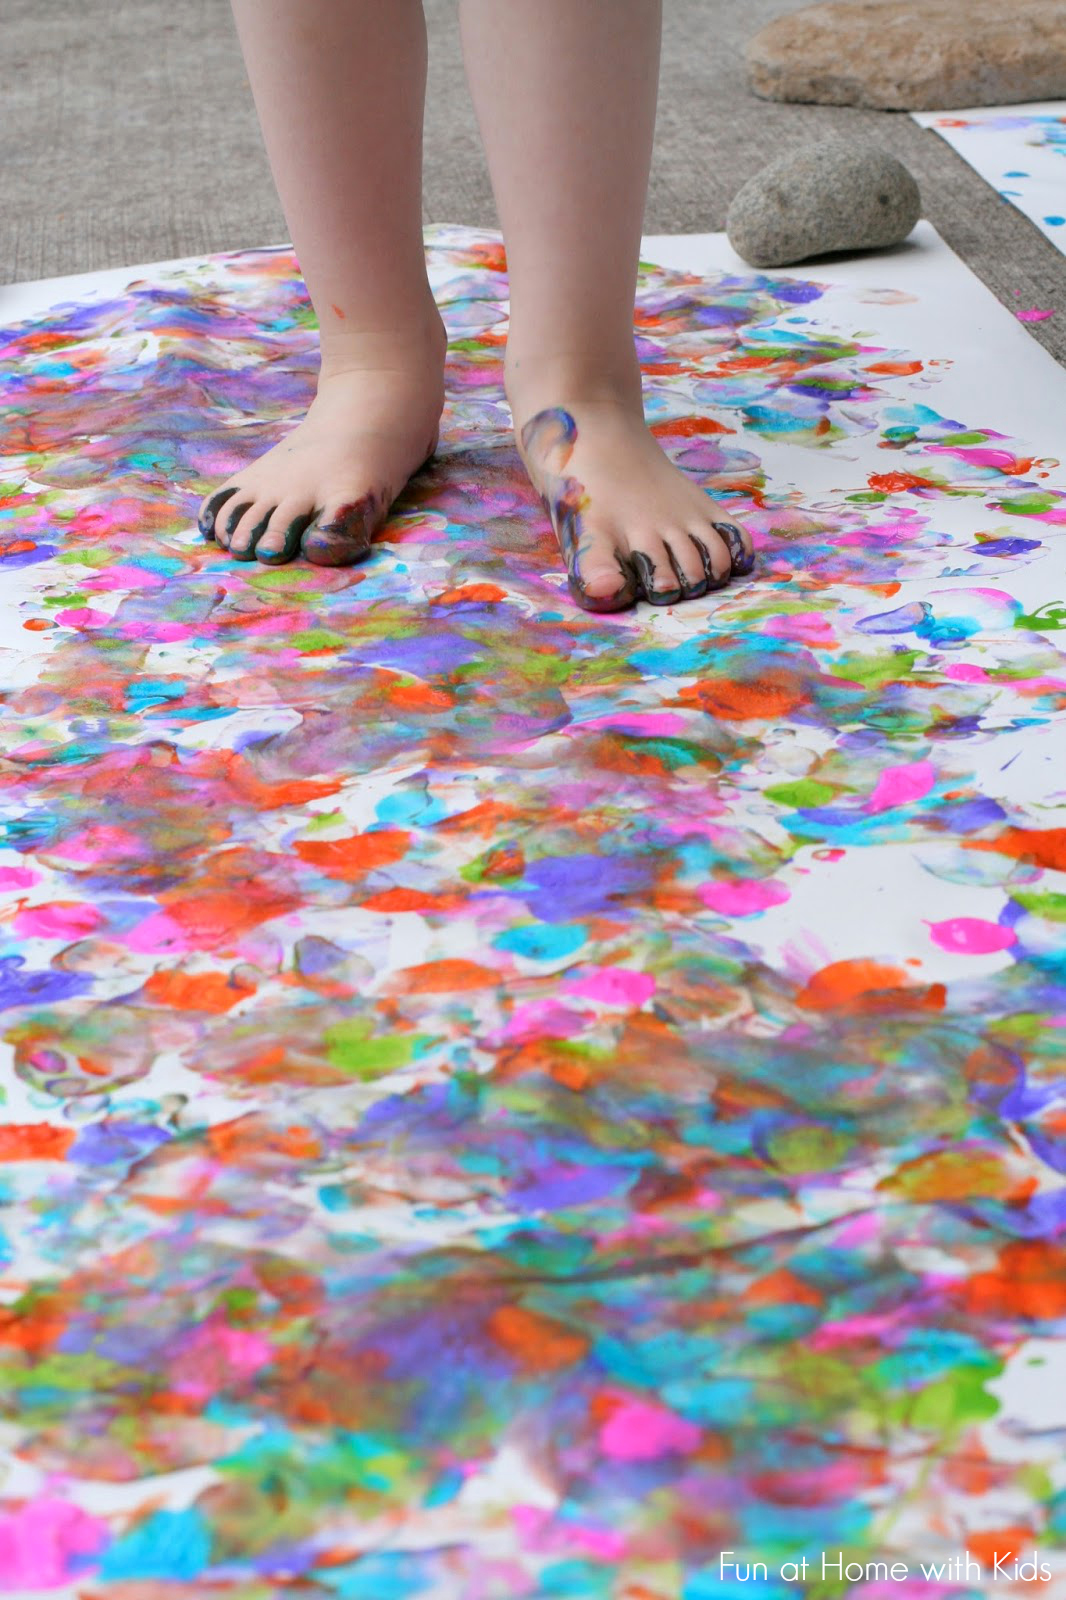 Big art painting with your feet Fun painting ideas for toddlers